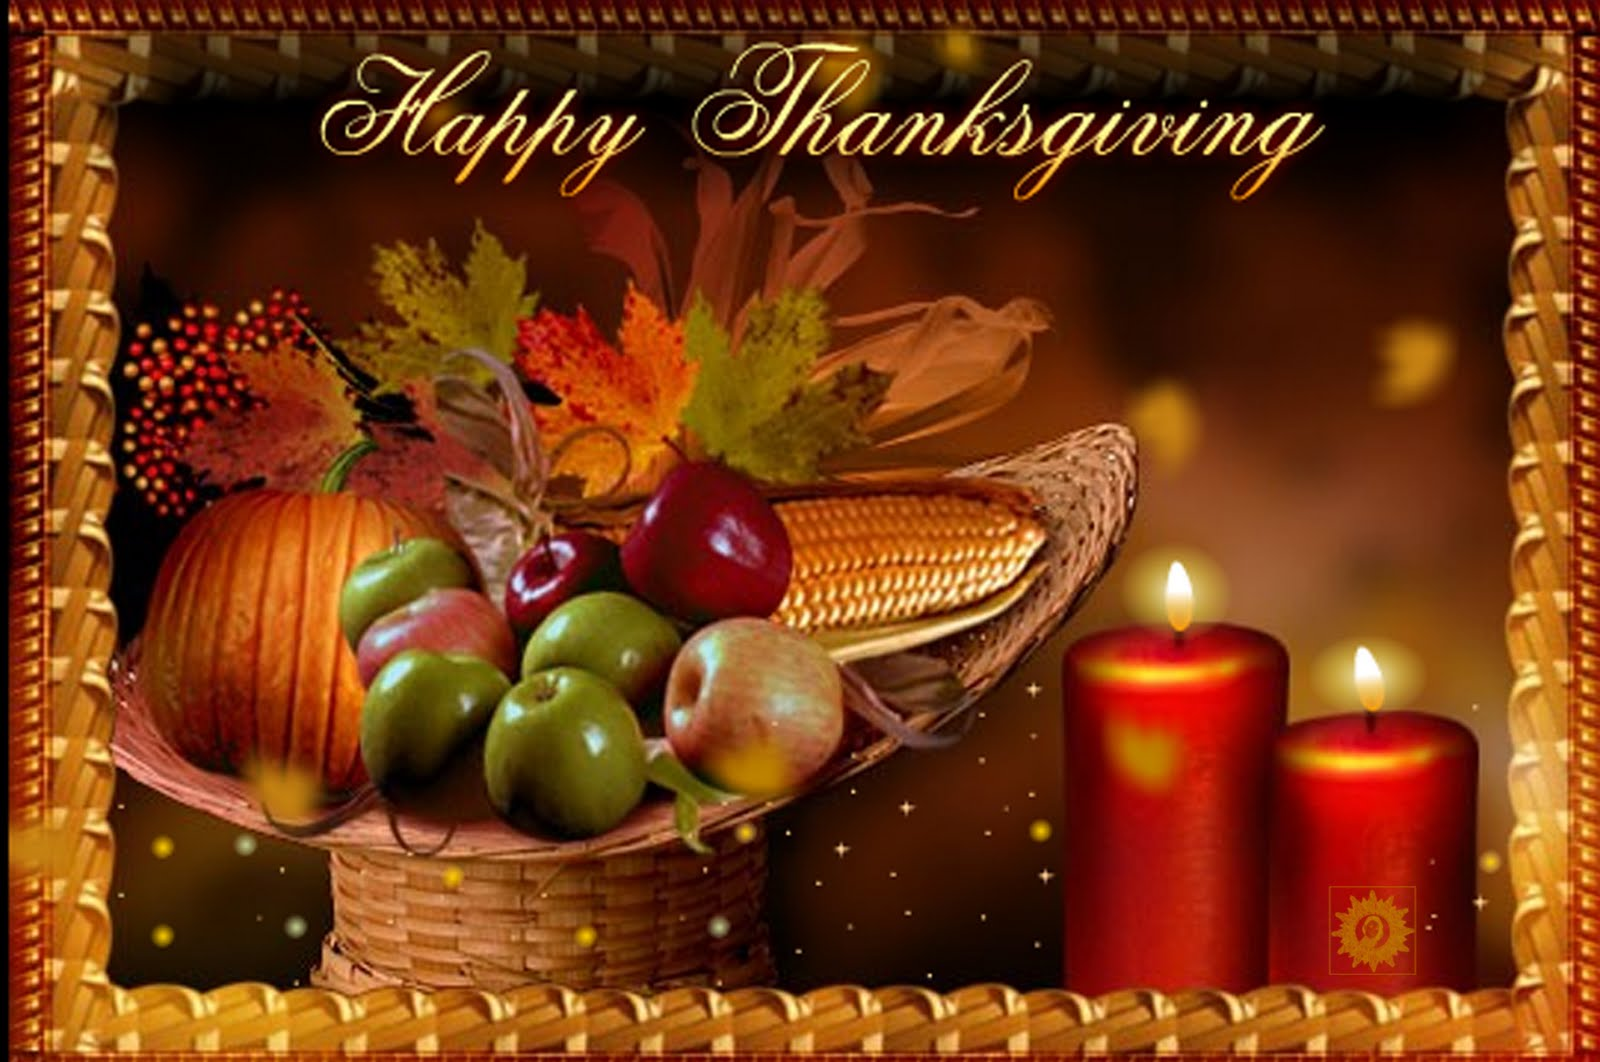 We Wish You A Very Happy Thanksgiving On Behalf Of The Olivet New